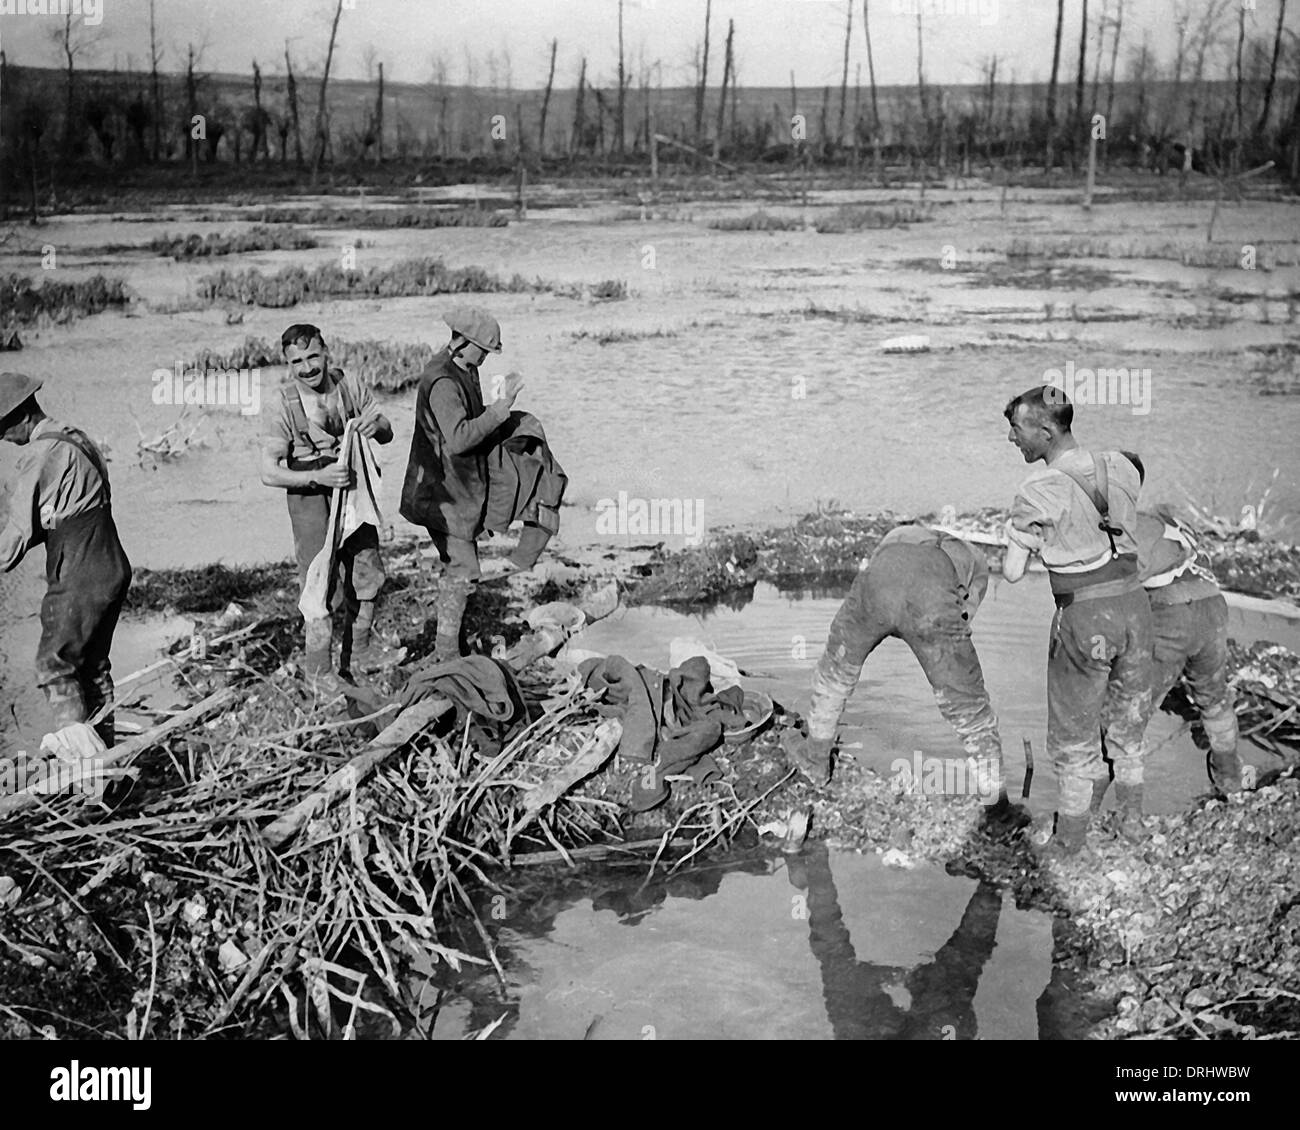 British soldiers washing in swamp, Somme, WW1 - Stock Image